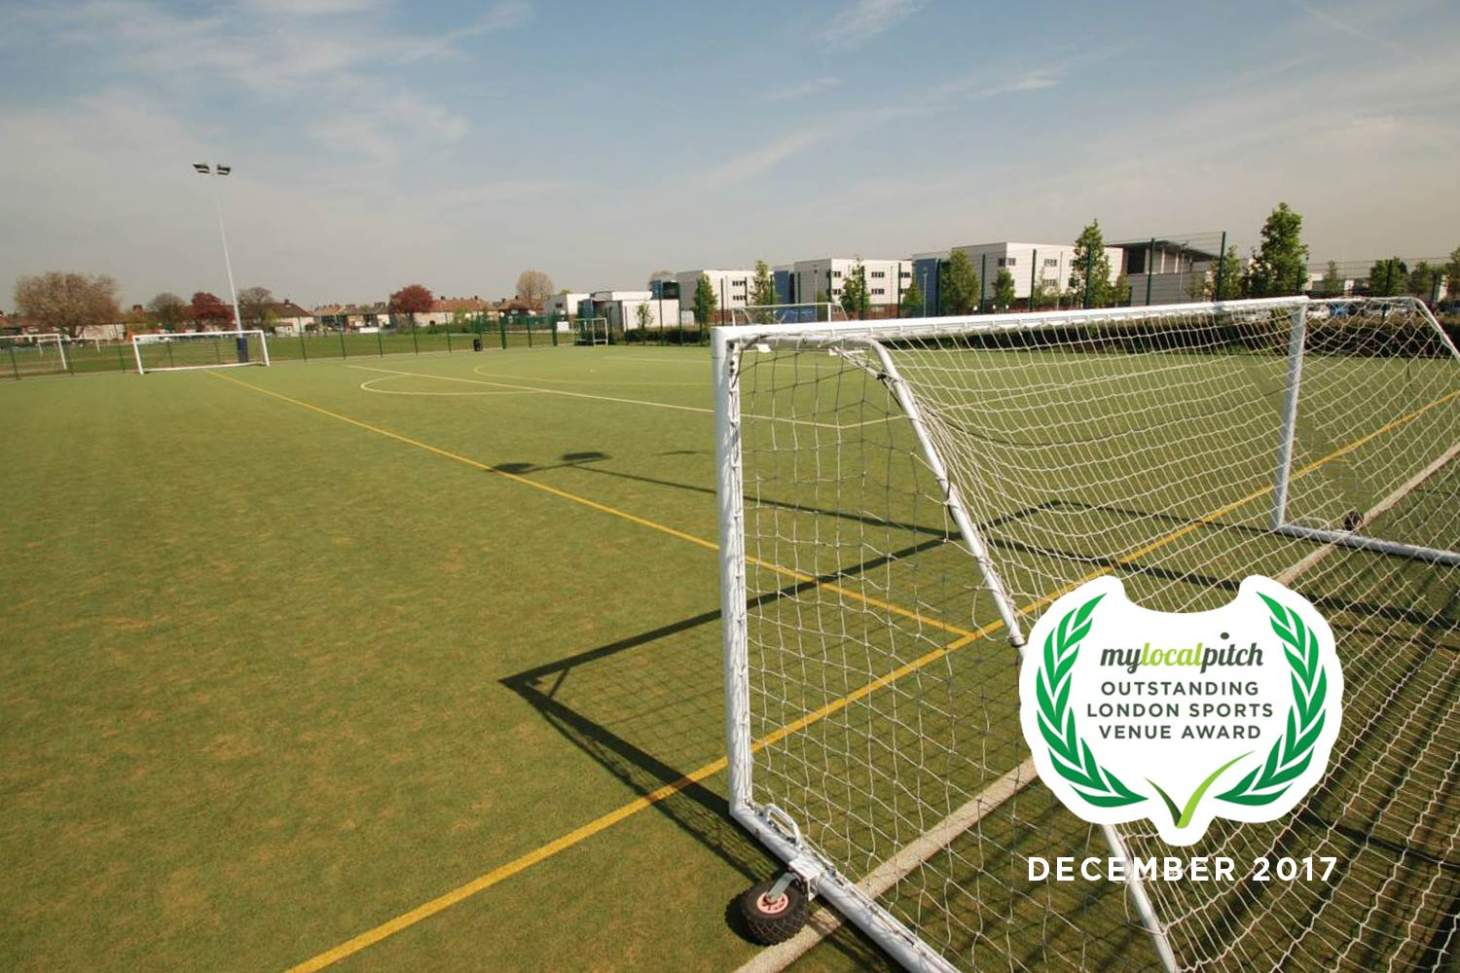 Castle Green Leisure Centre 5 a side   Astroturf football pitch